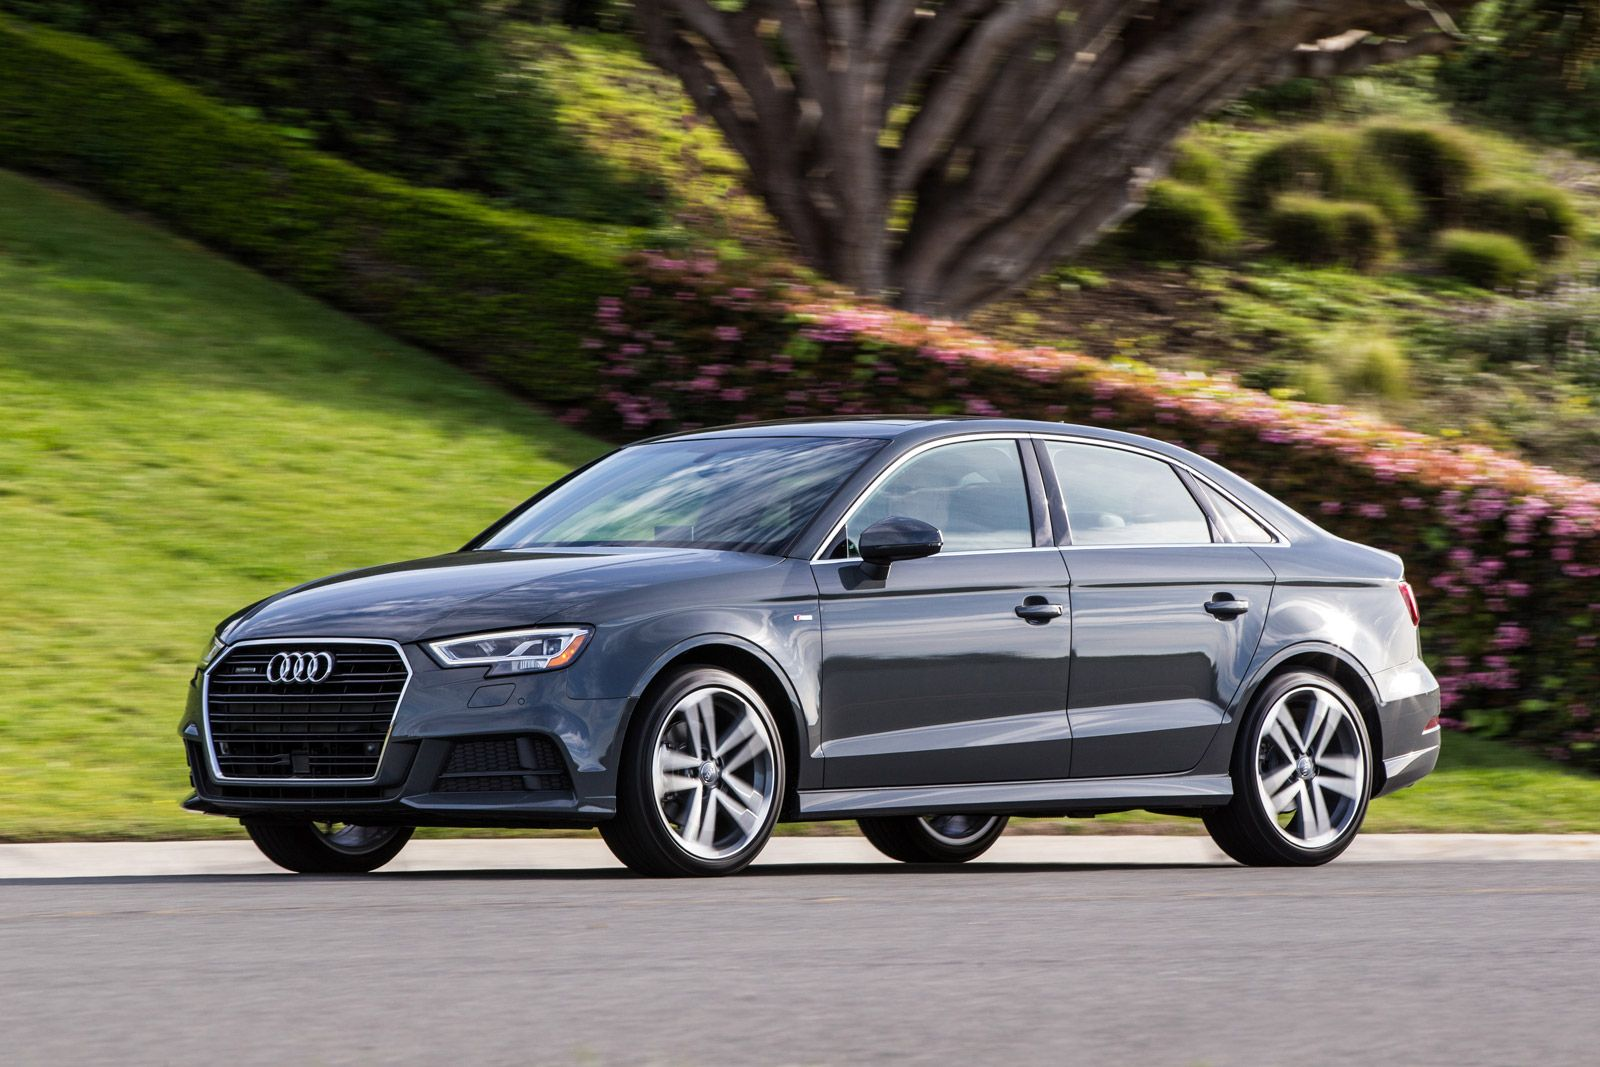 There S A Tie For The Highest Ranked Vehicle In Small Premium Car Category Between Audi A3 And Bmw 2 Series